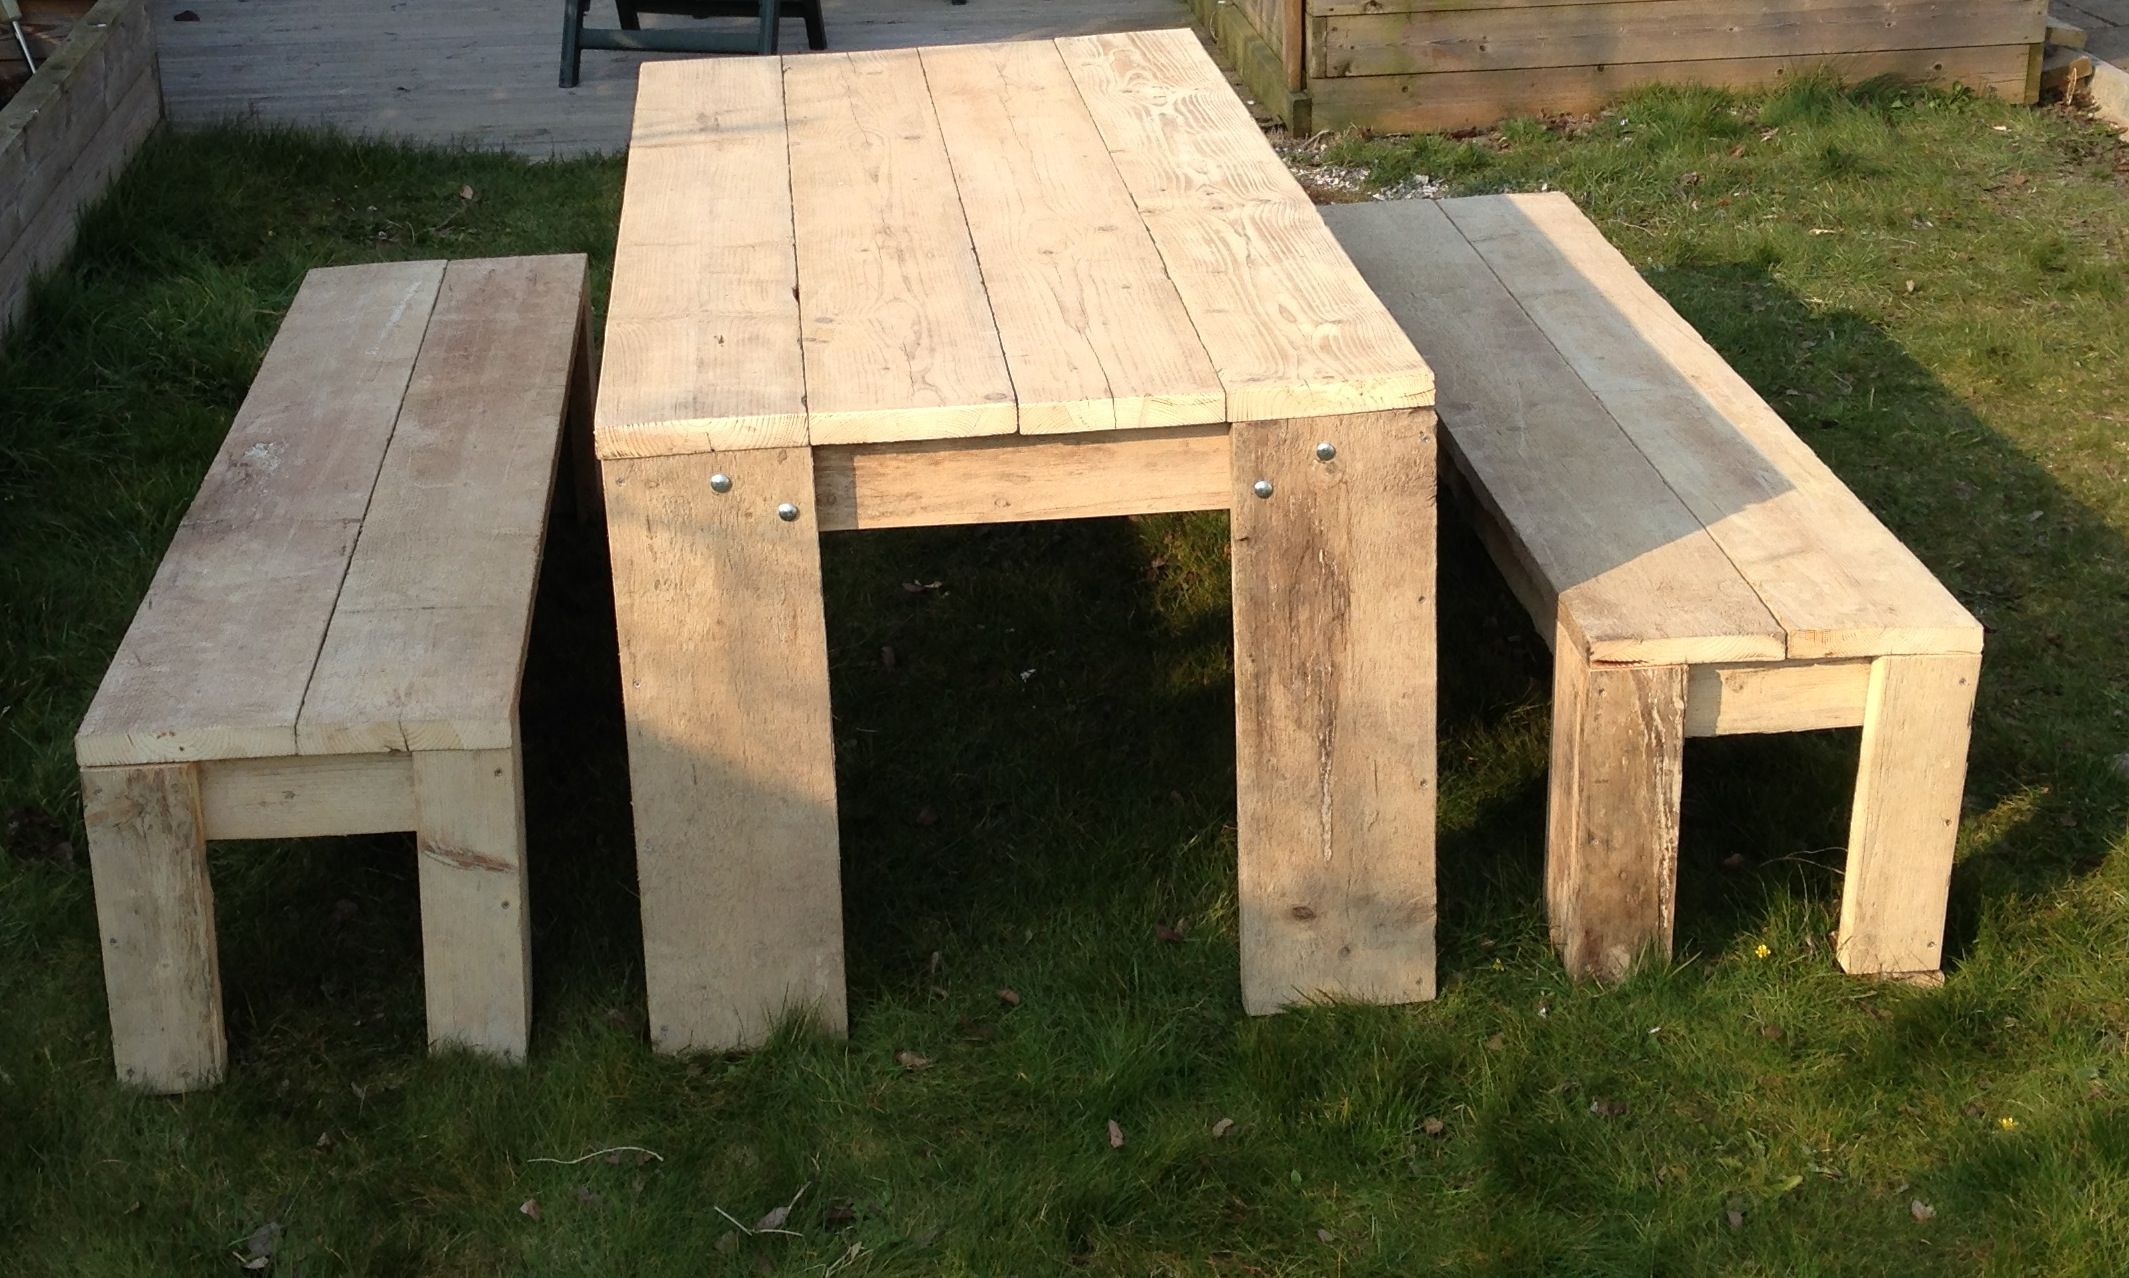 Volunteers Needed Garden Furniture Build May Plough